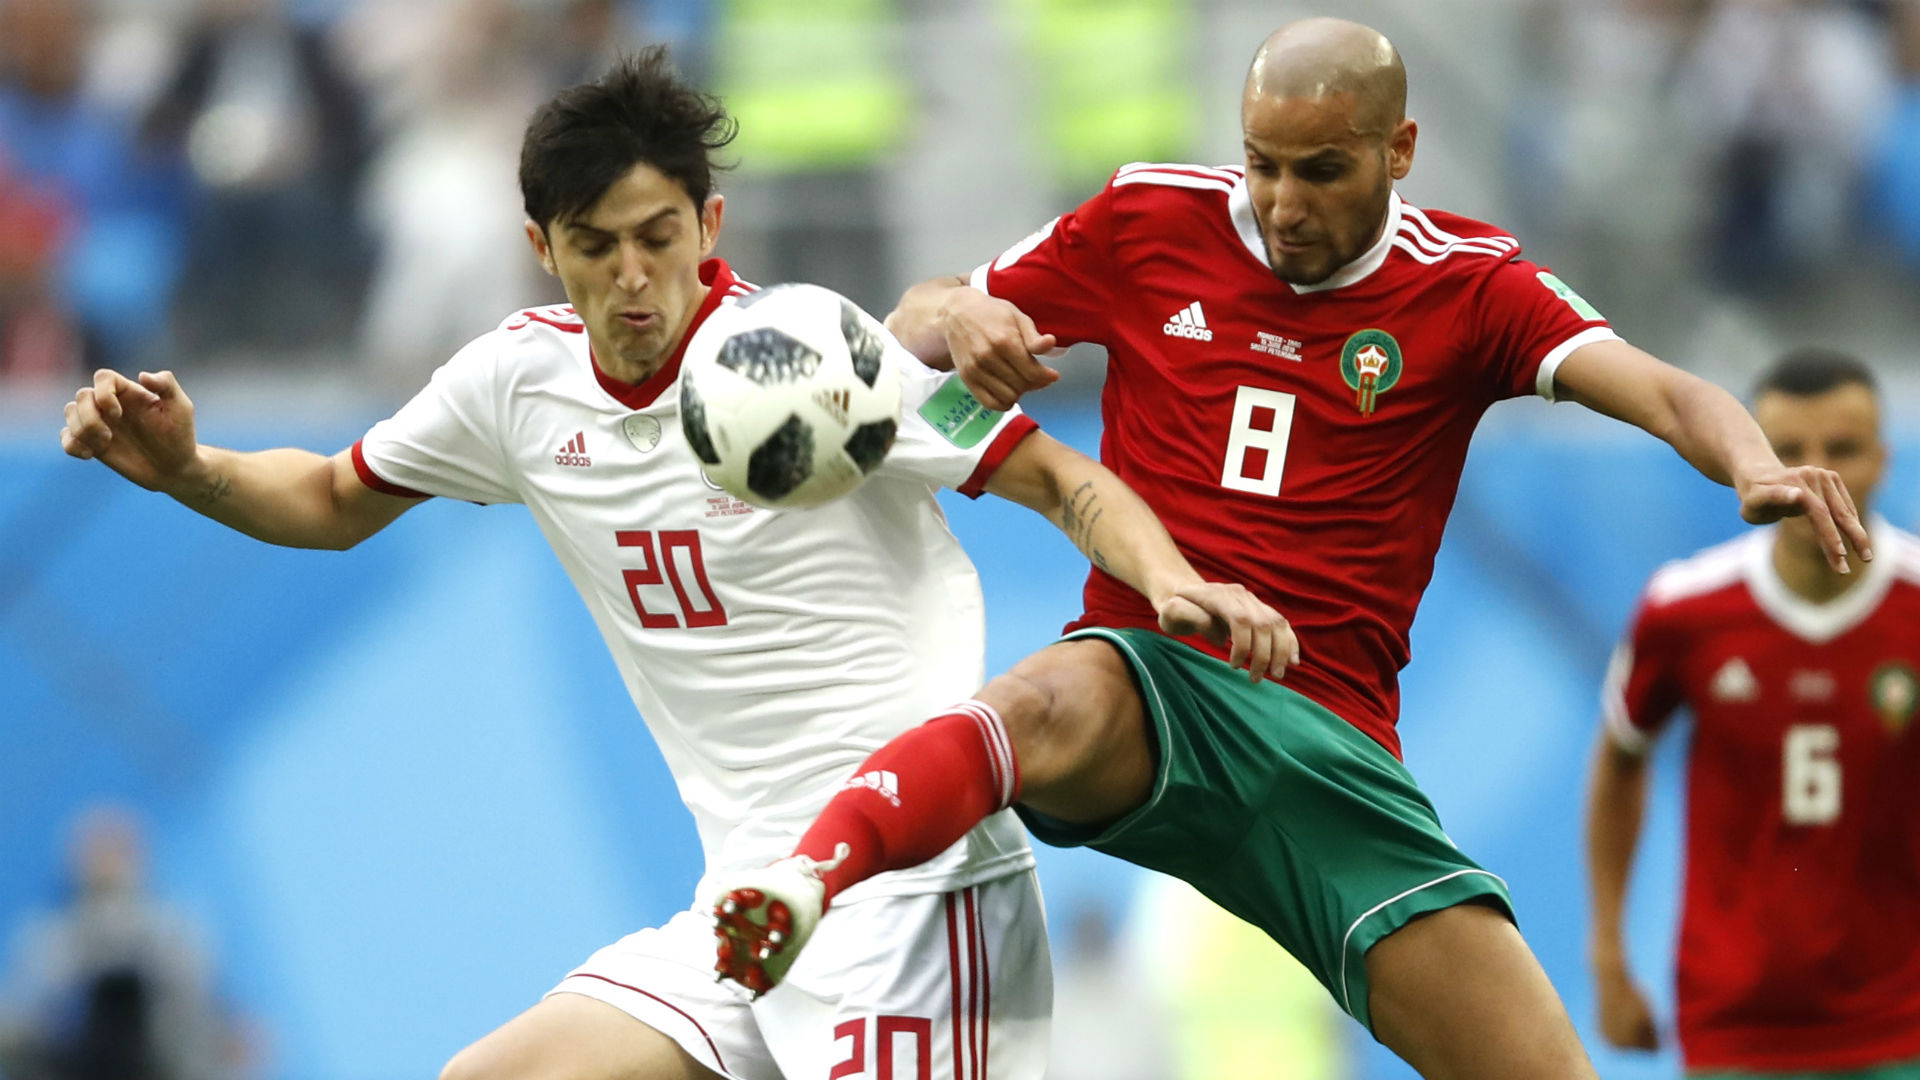 'What a game' – Twitter shocked by Morocco's defeat to Iran